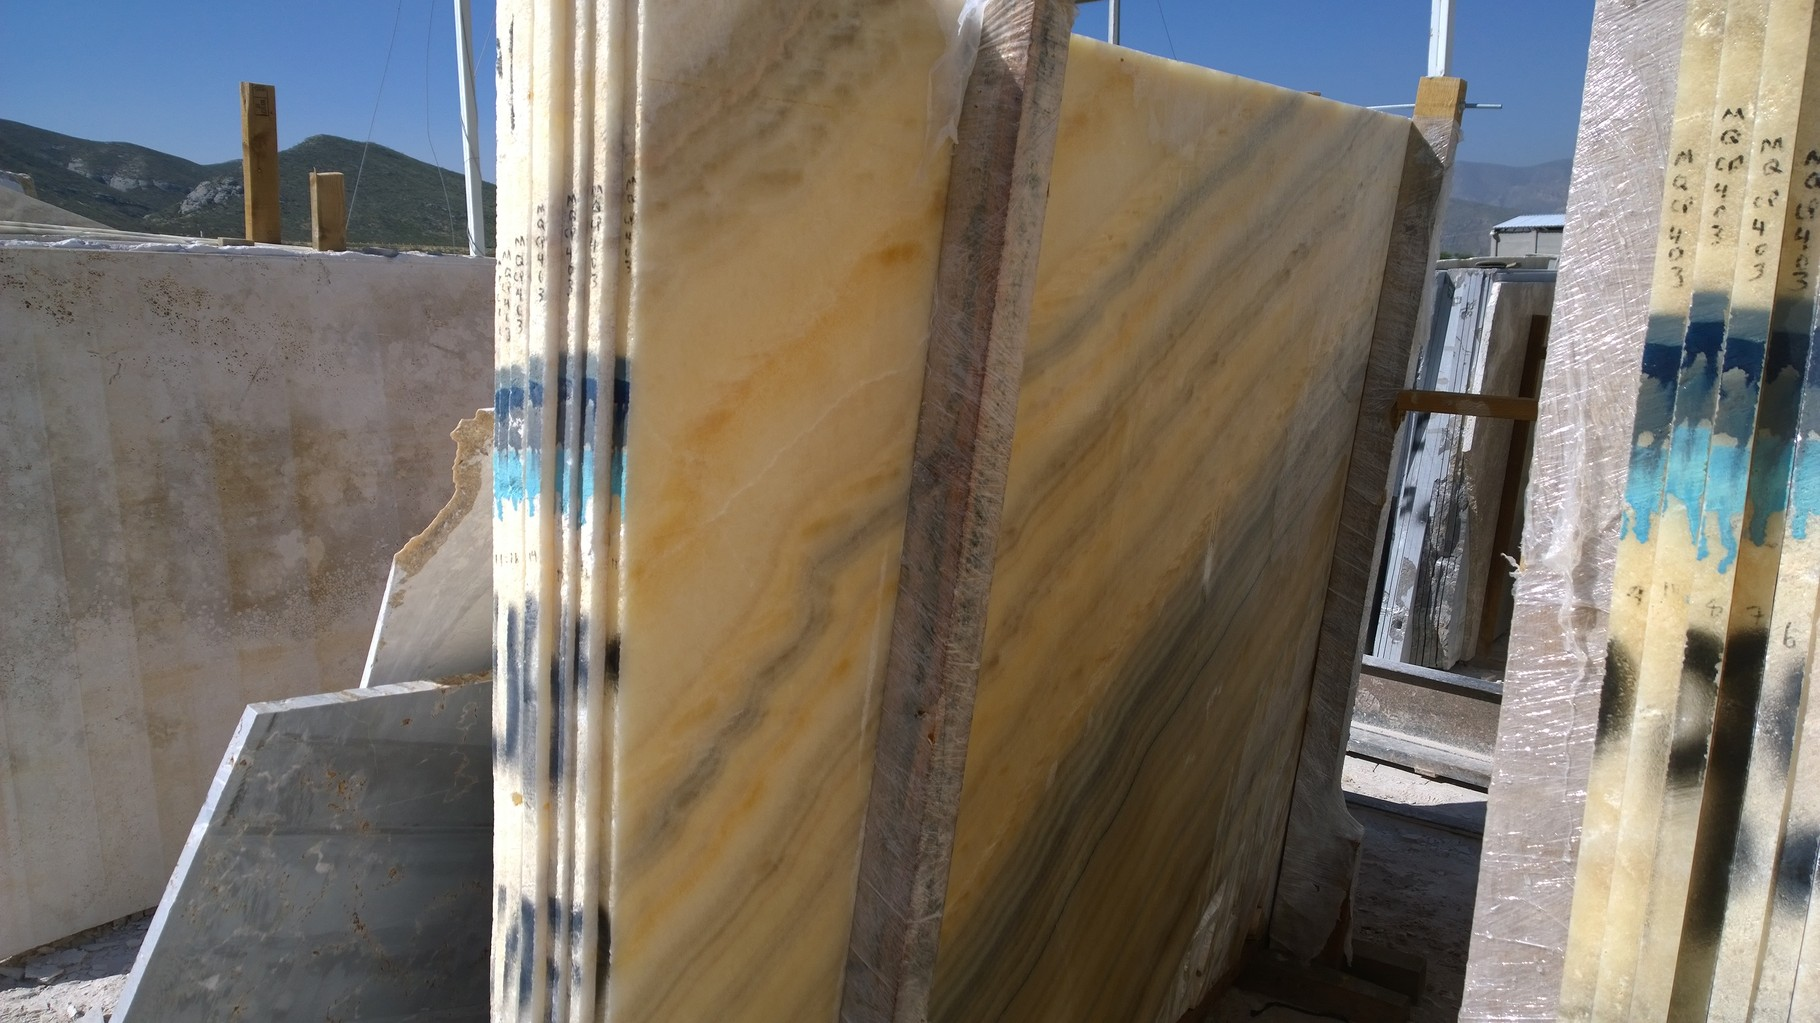 onyx slabs, onyx slab, onyx slabs, onyx slabs price, onyx slabs for sale, onyx slabs countertops, red onyx slabs, onyx slab wall, onyx slabs dining table